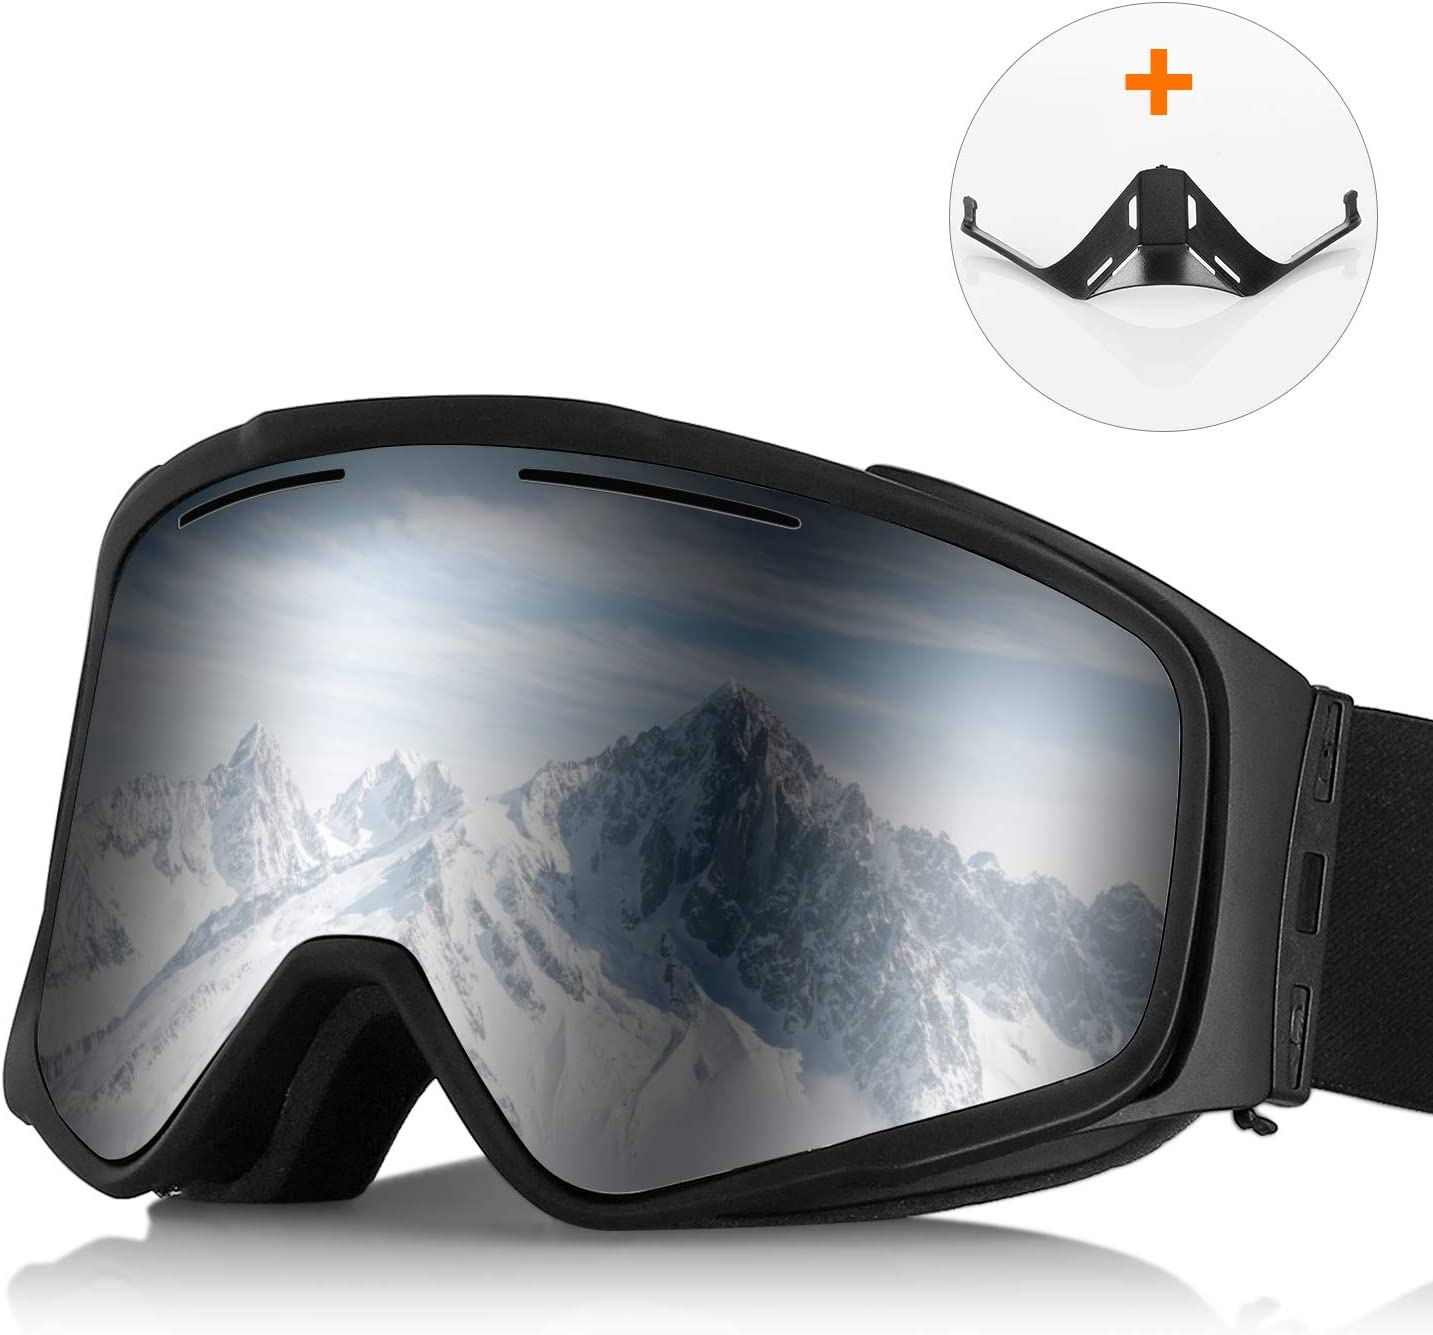 Ski Goggles/Snowboard Snow Goggles with Magnetic Interchangeable Lenses, Anti-Fog, Anti-Slip Strap, 100% UV Protection, Snow Goggles for Men Women